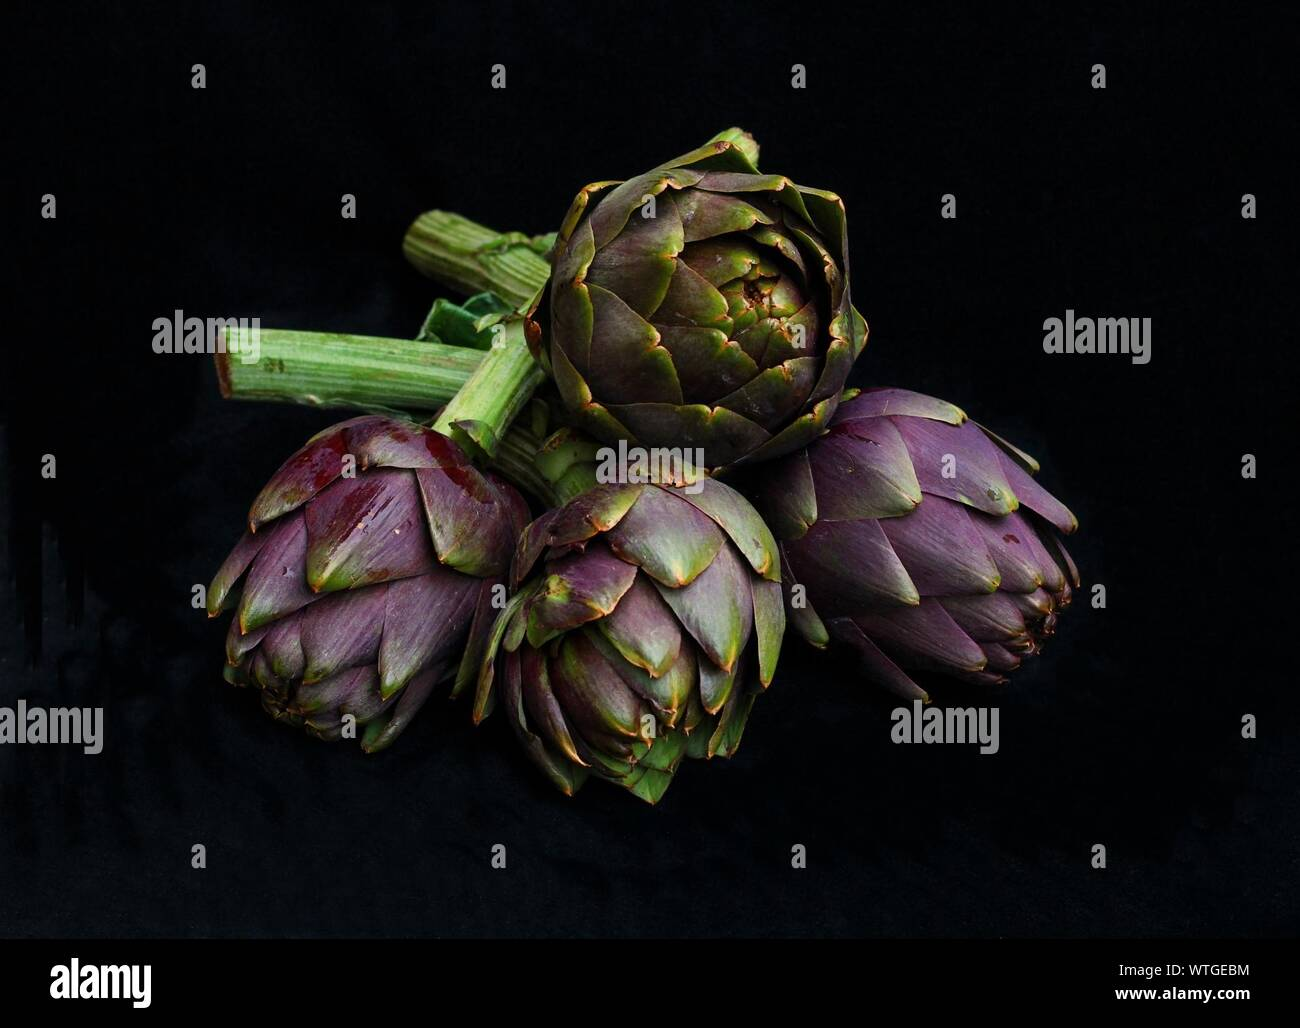 Close-up Of Artichokes Against Black Background Stock Photo